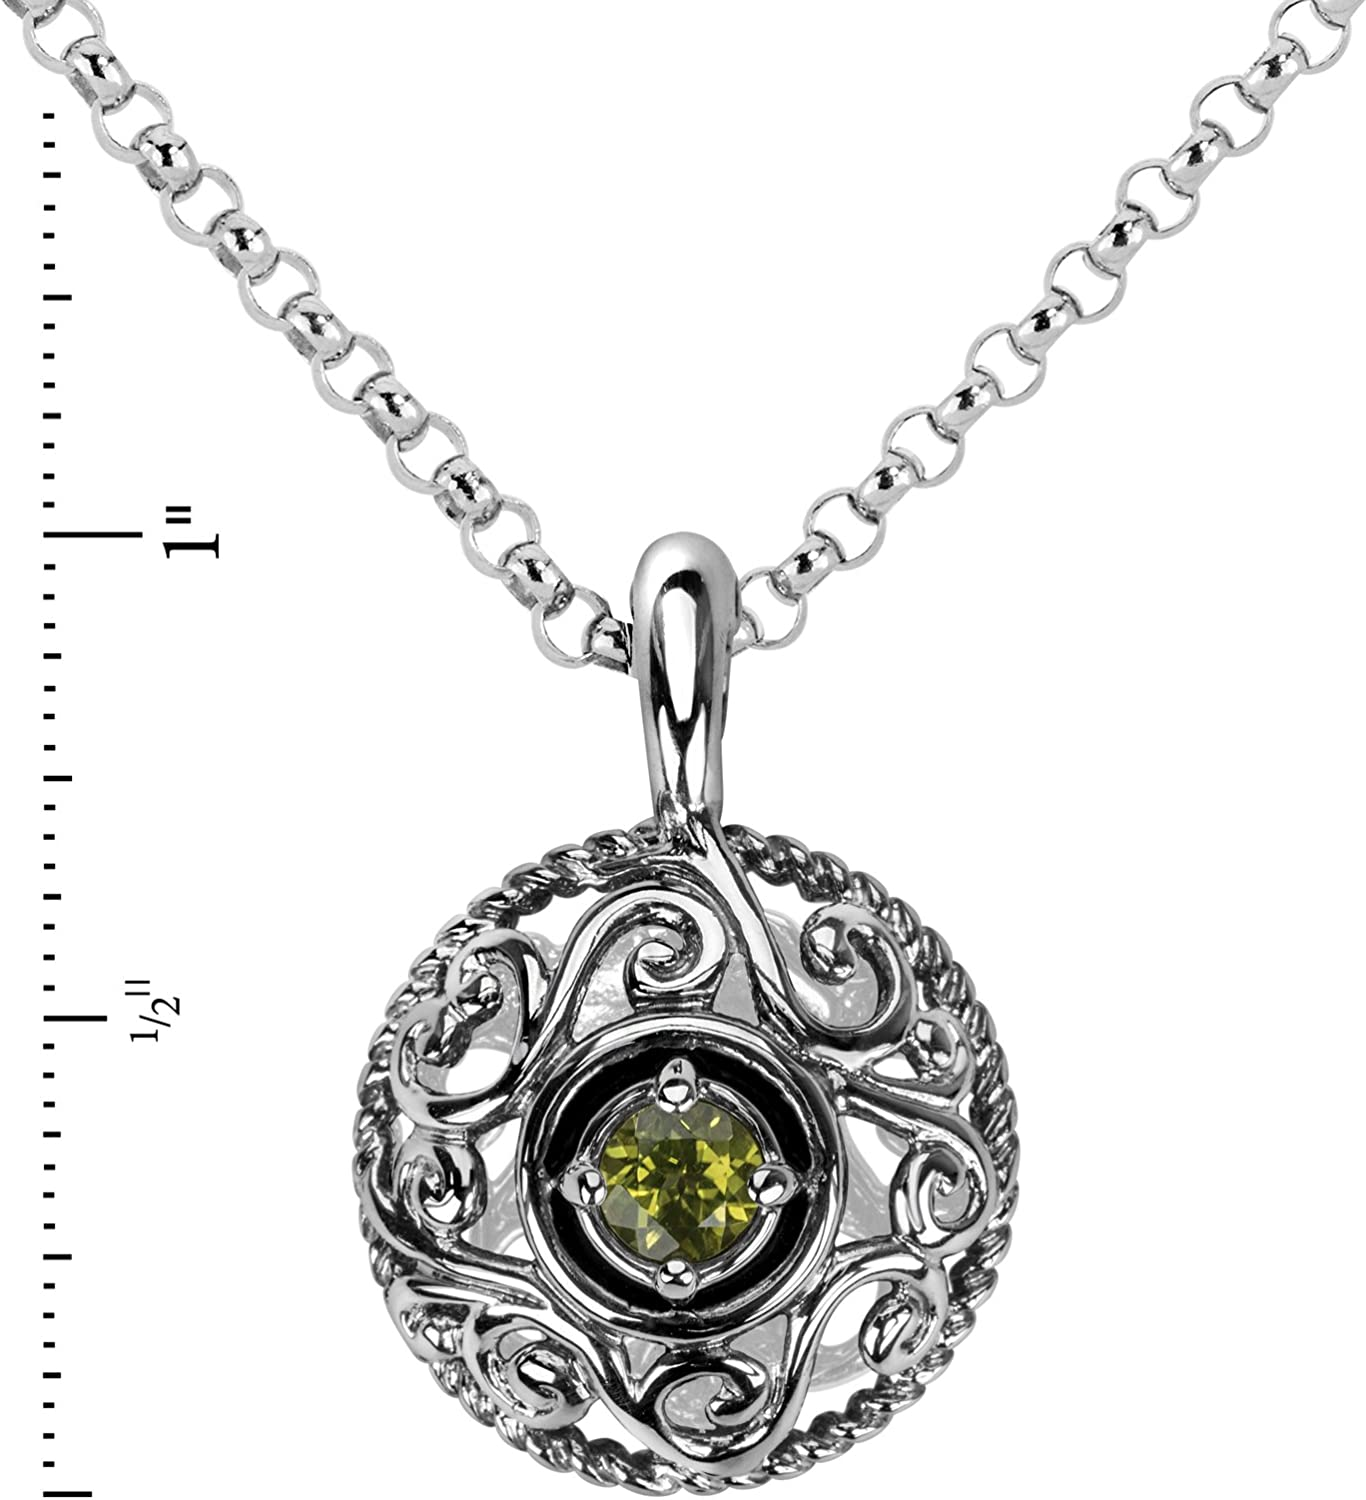 16 to 18 Chain Carolyn Pollack Sterling Silver Genuine Gemstone Birthstone Pendant Necklace